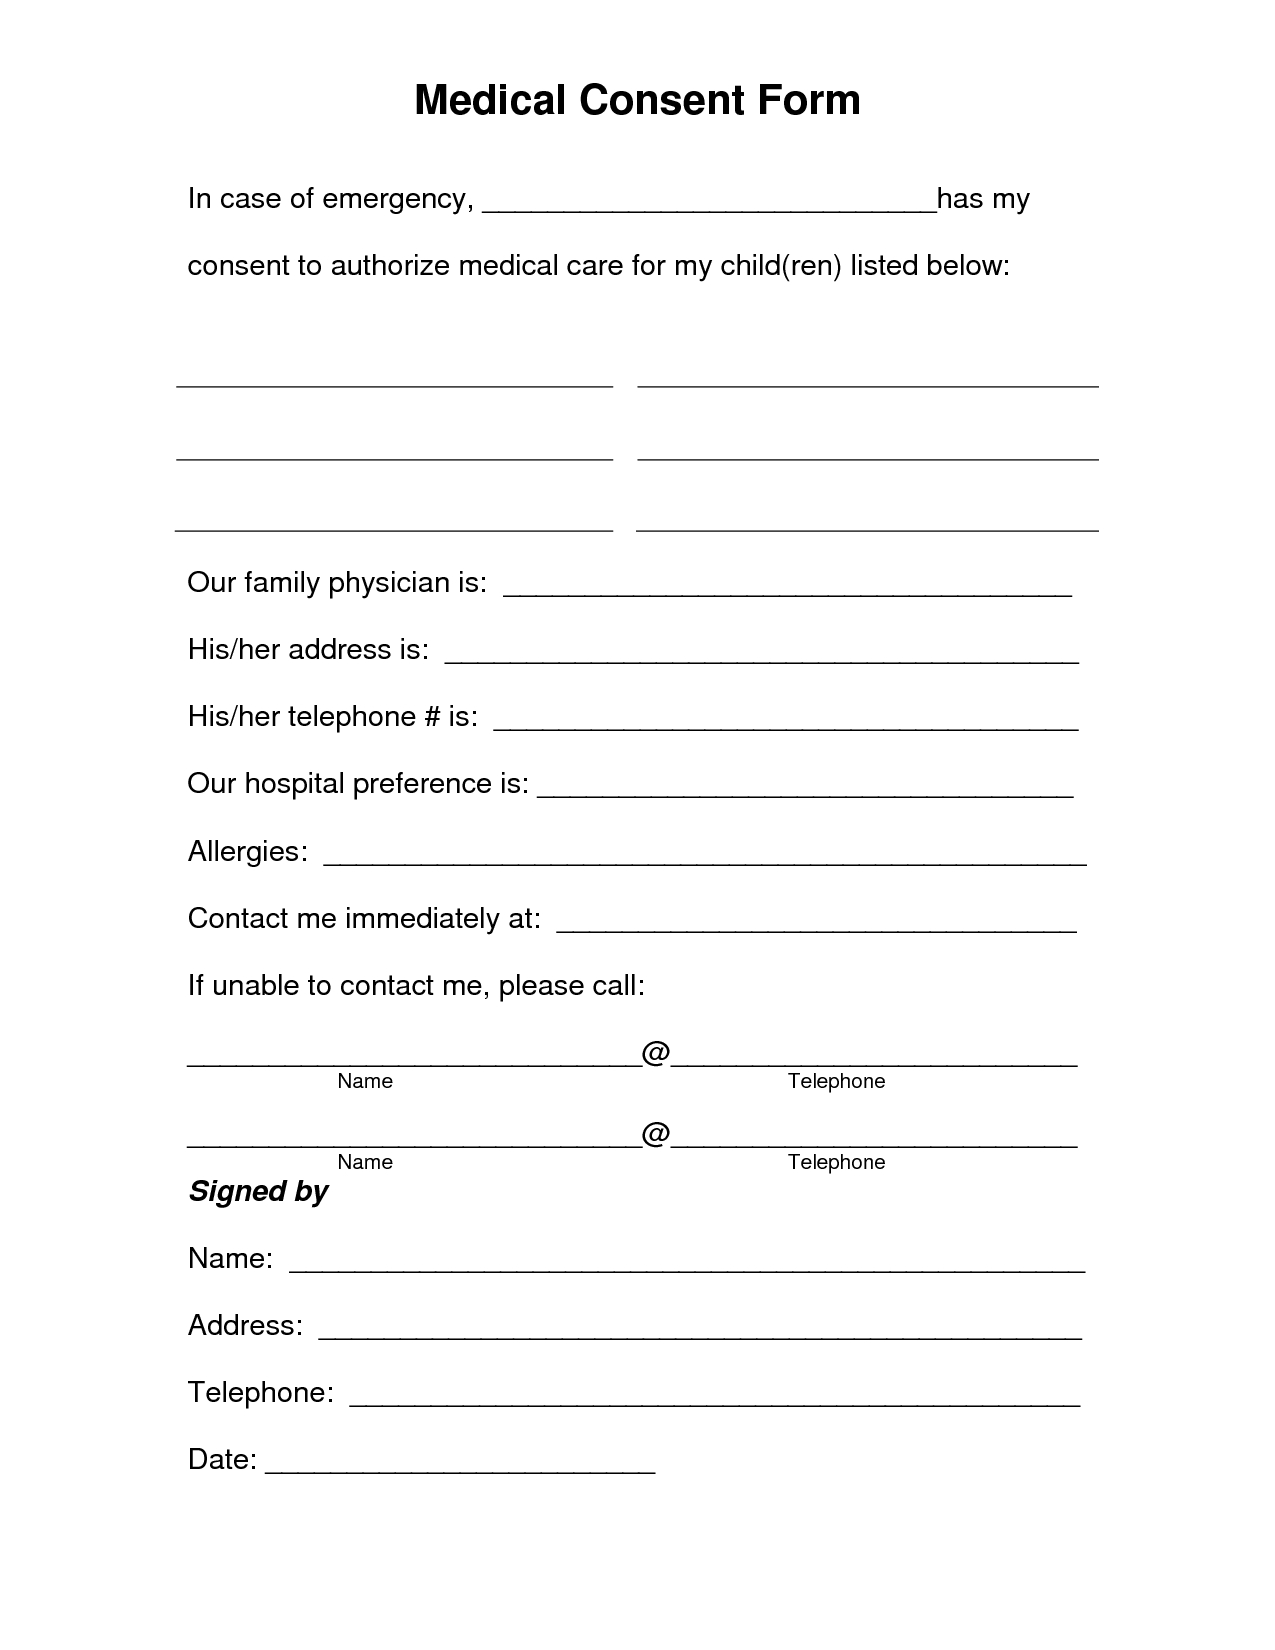 Free Printable Medical Consent Form | Free Medical Consent Form - Free Printable Caregiver Forms